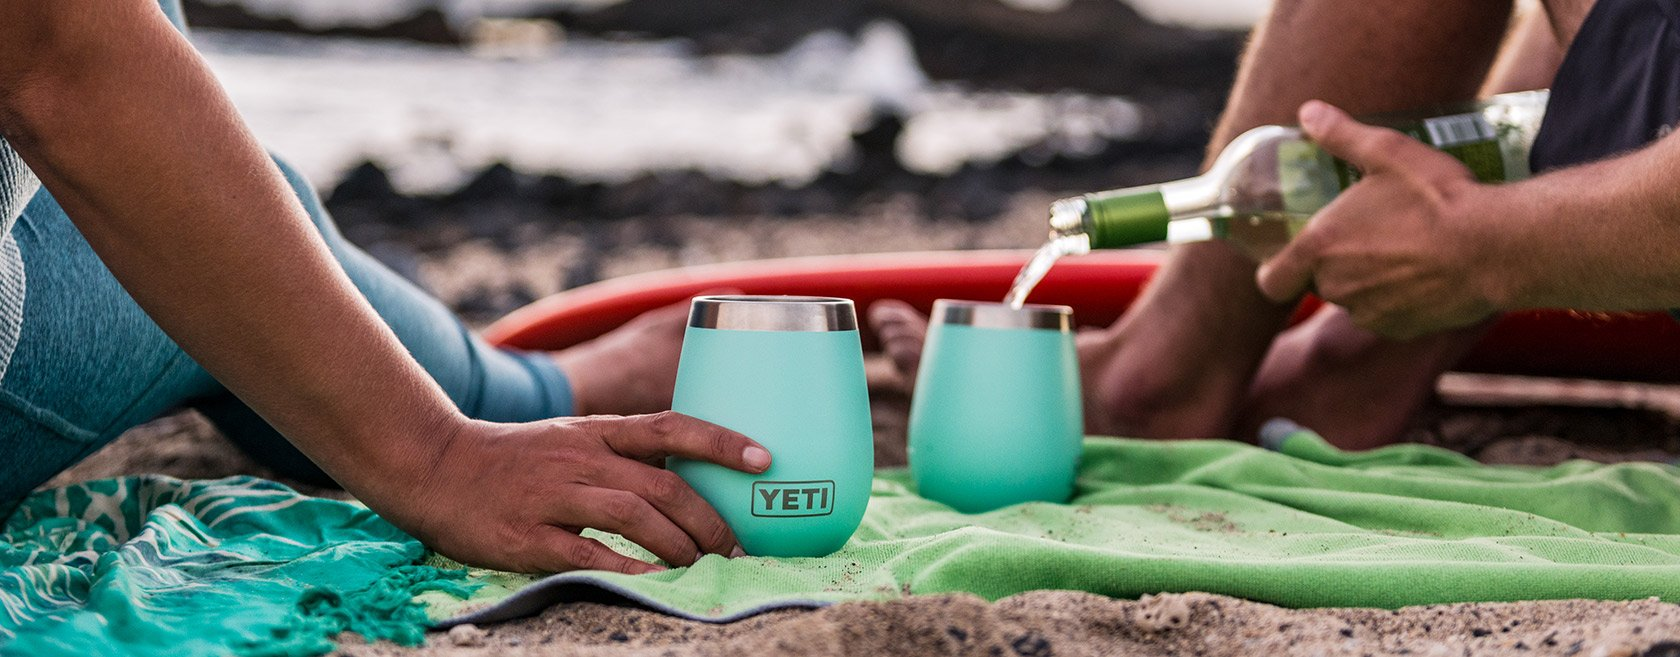 Yeti Just Revealed New Insulated Wine Tumblers In 5 Colors